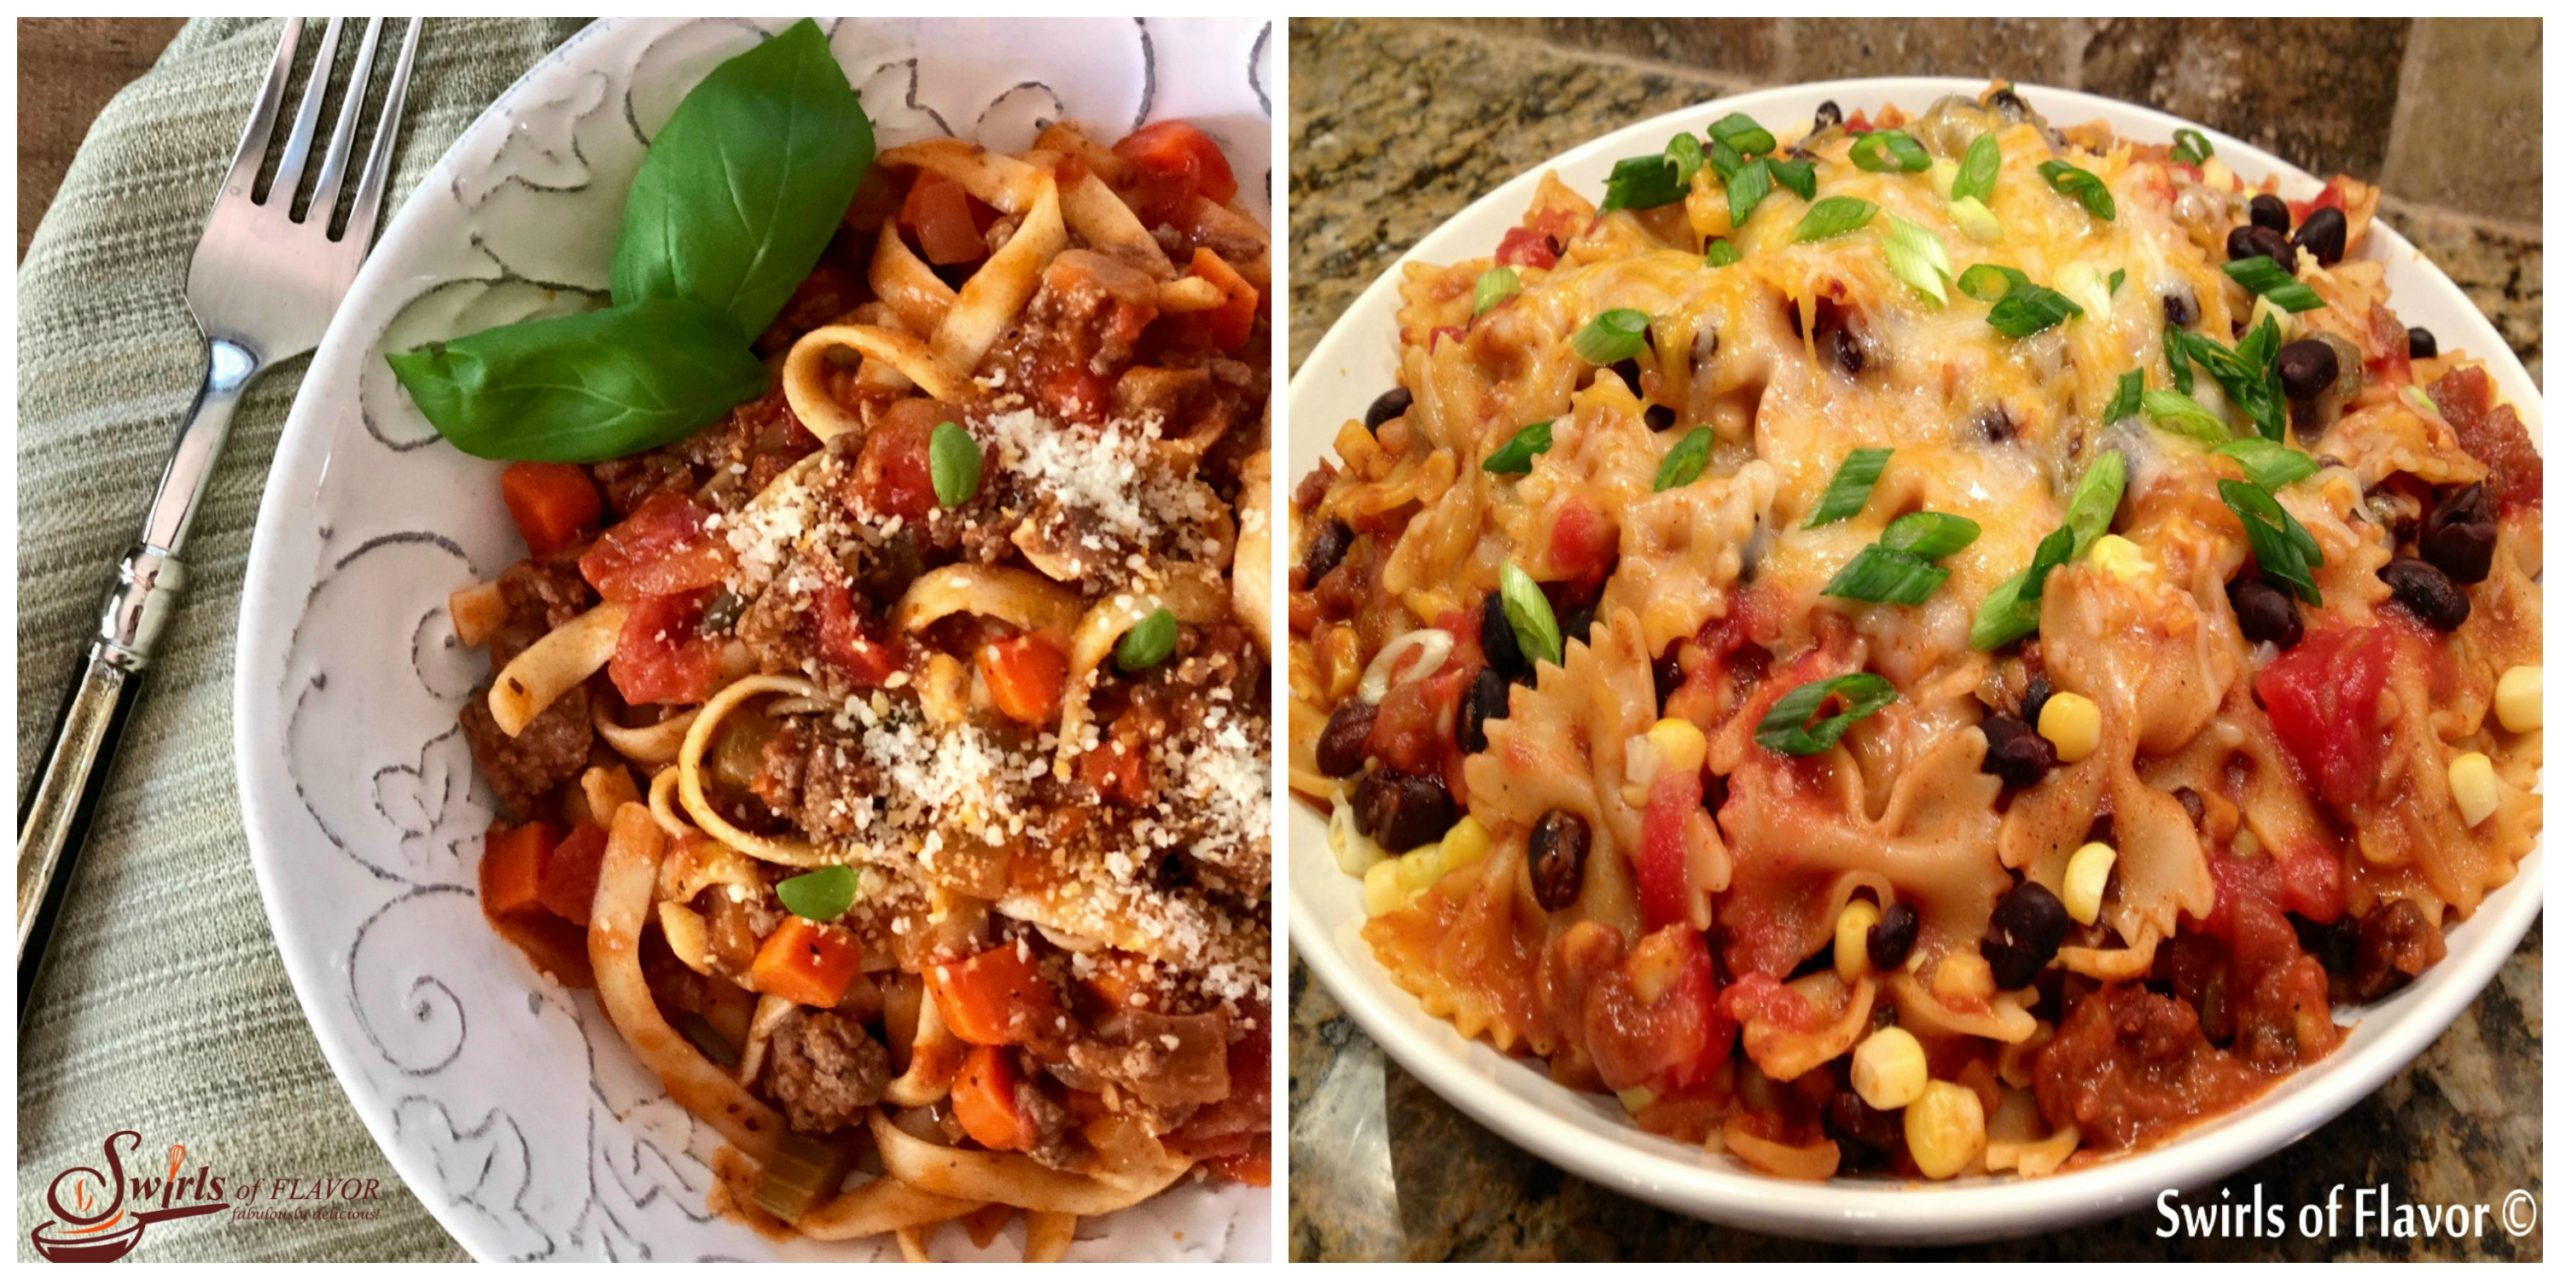 Fettuccine Bolognese and Mexicali Pasta